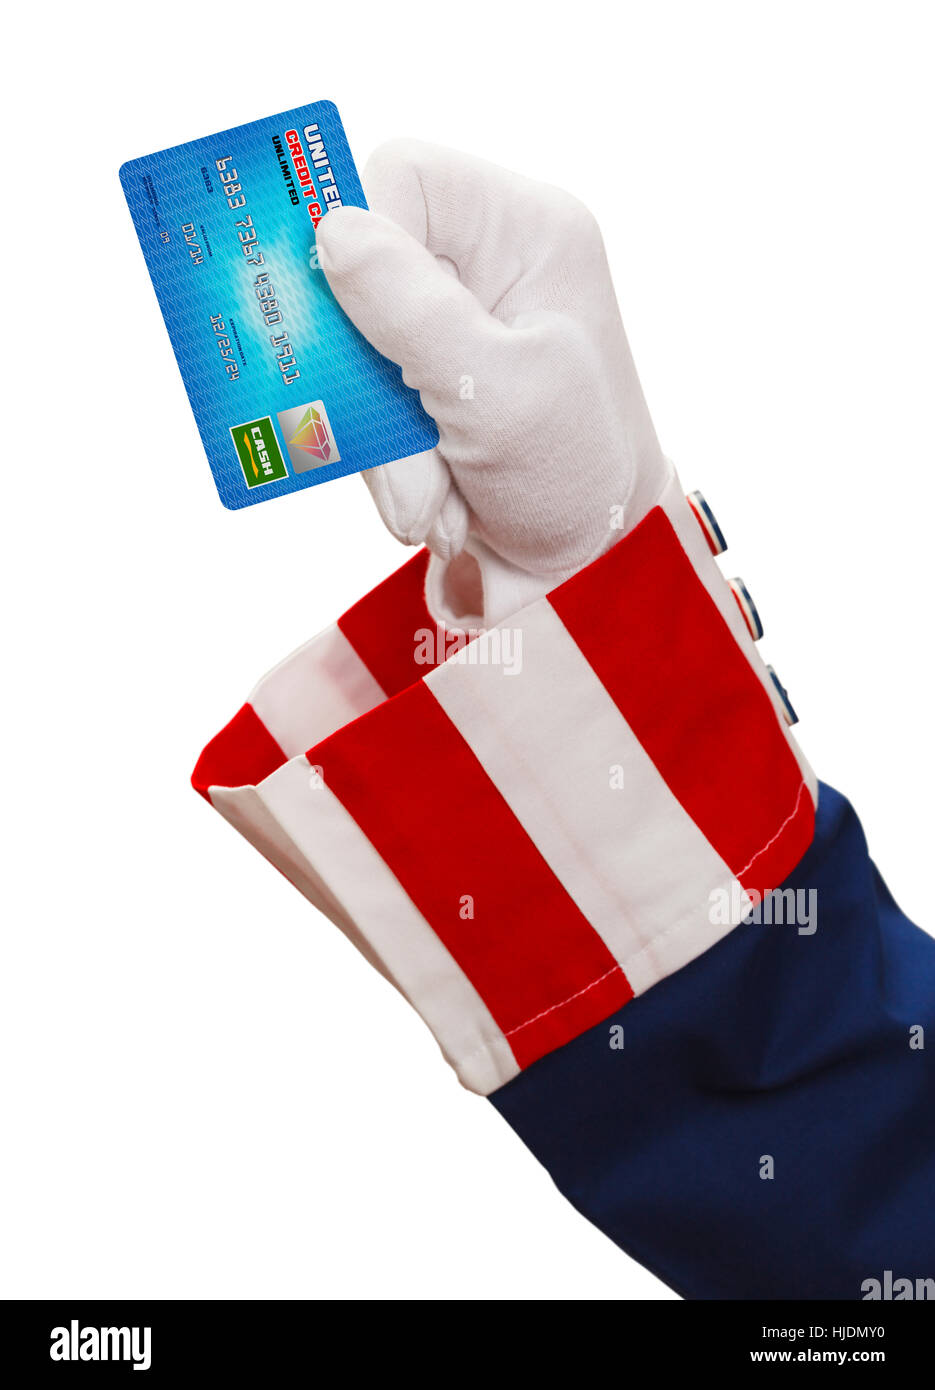 President Holding Up a Credit Card Isolated on White Background. - Stock Image